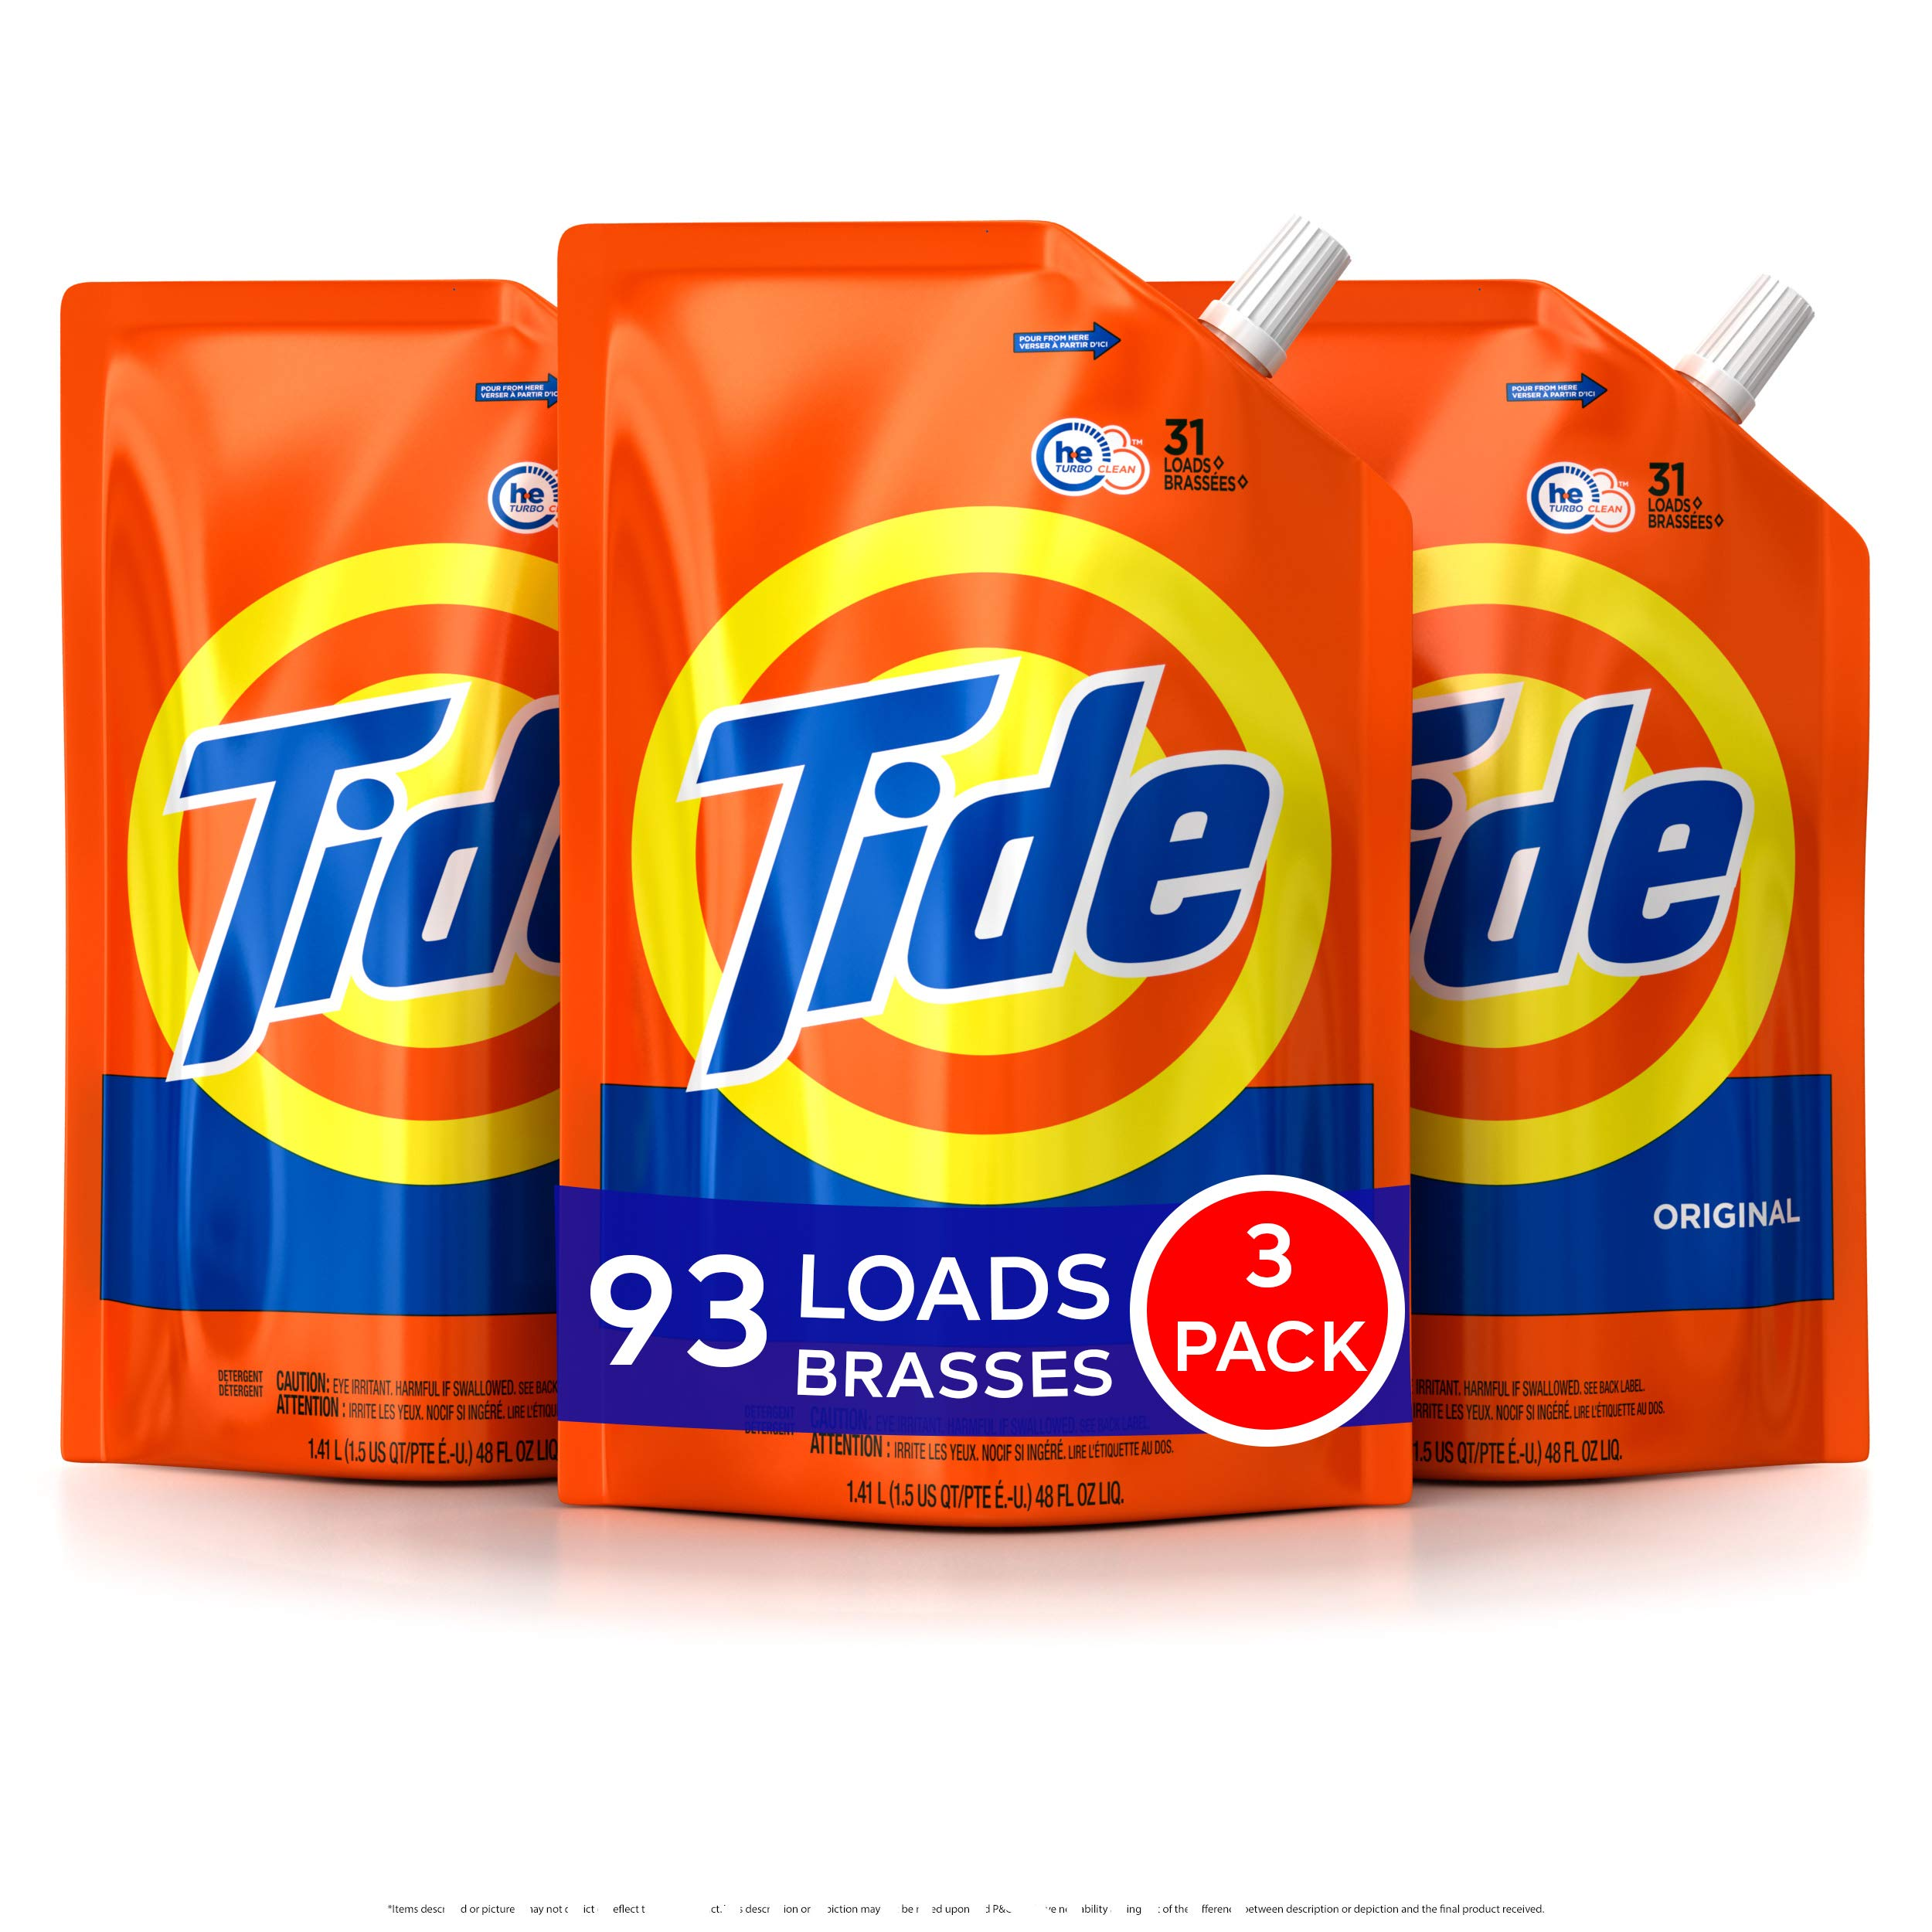 Tide Laundry Detergent Liquid, Original Scent, HE Turbo Clean, Pack of 3 Smart Pouches, 48 oz Each, 93 Loads Total by Tide